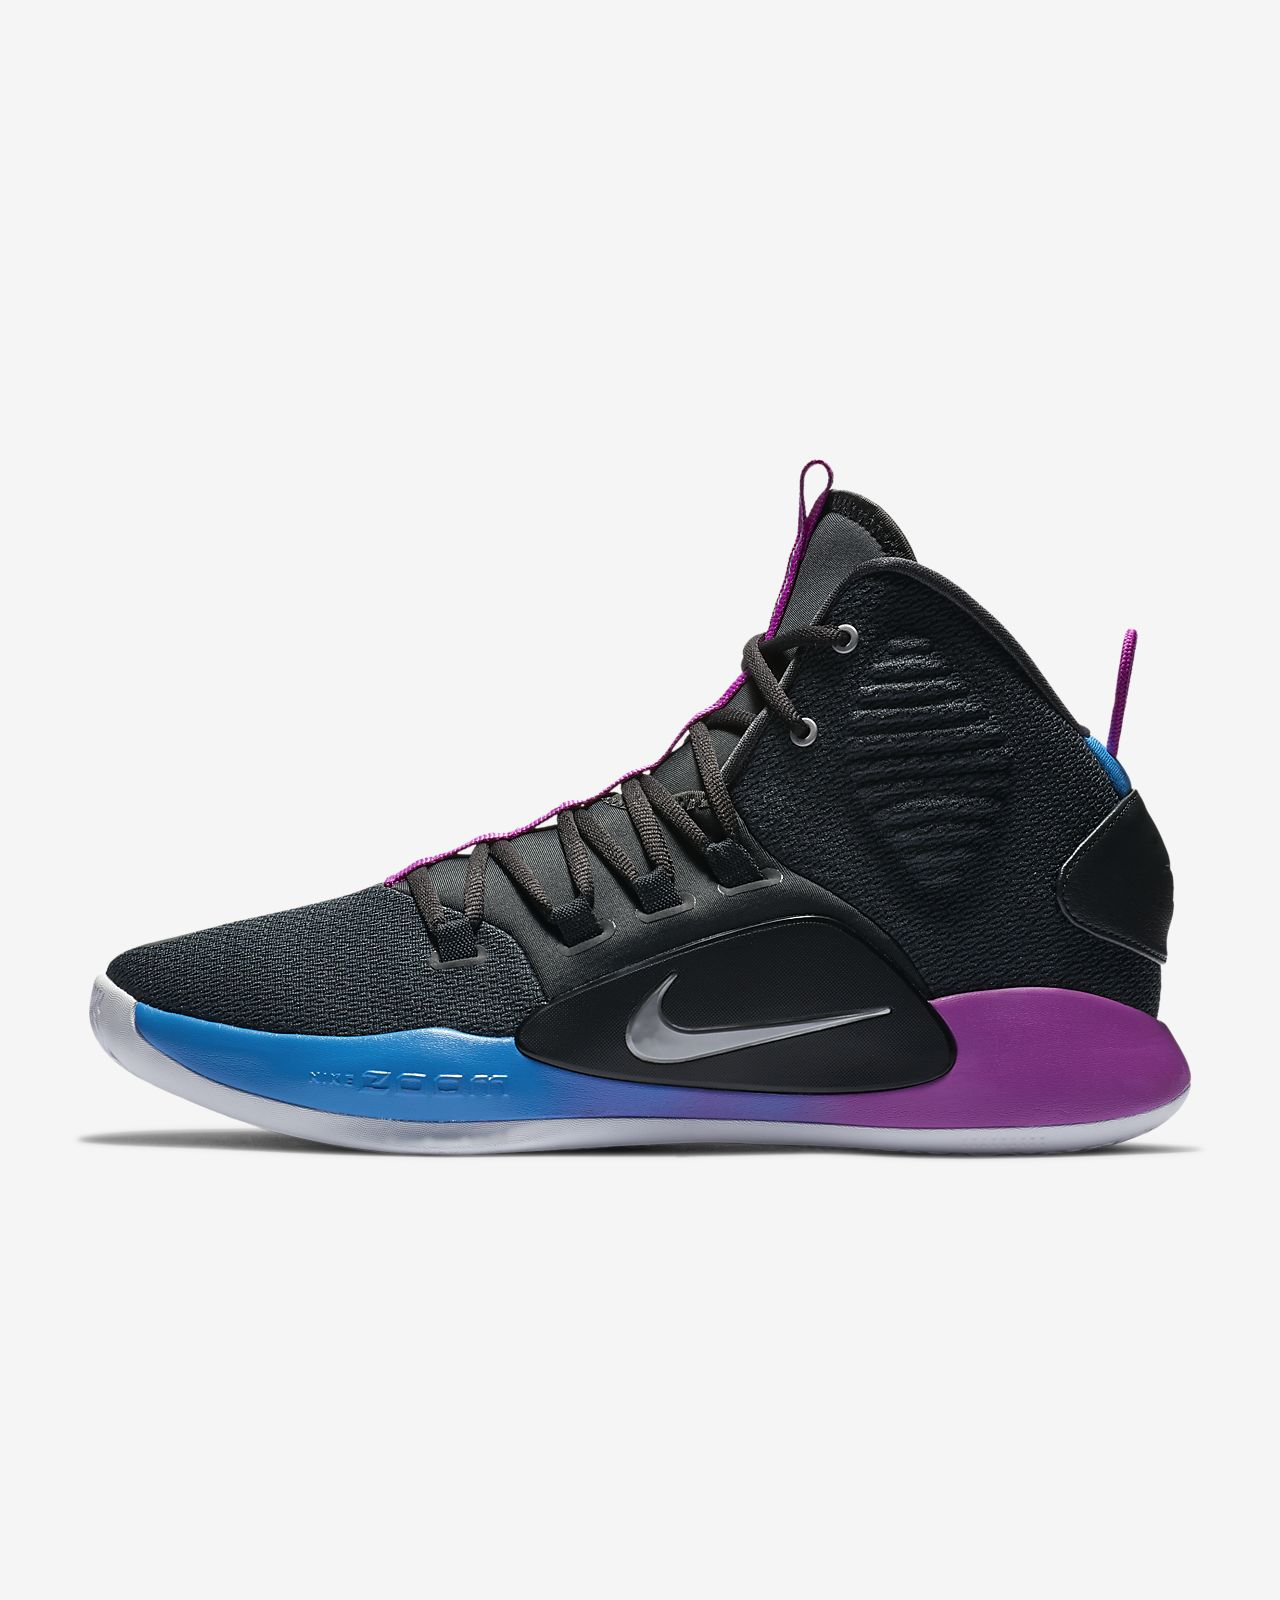 Nike Hyperdunk X Basketball Shoe